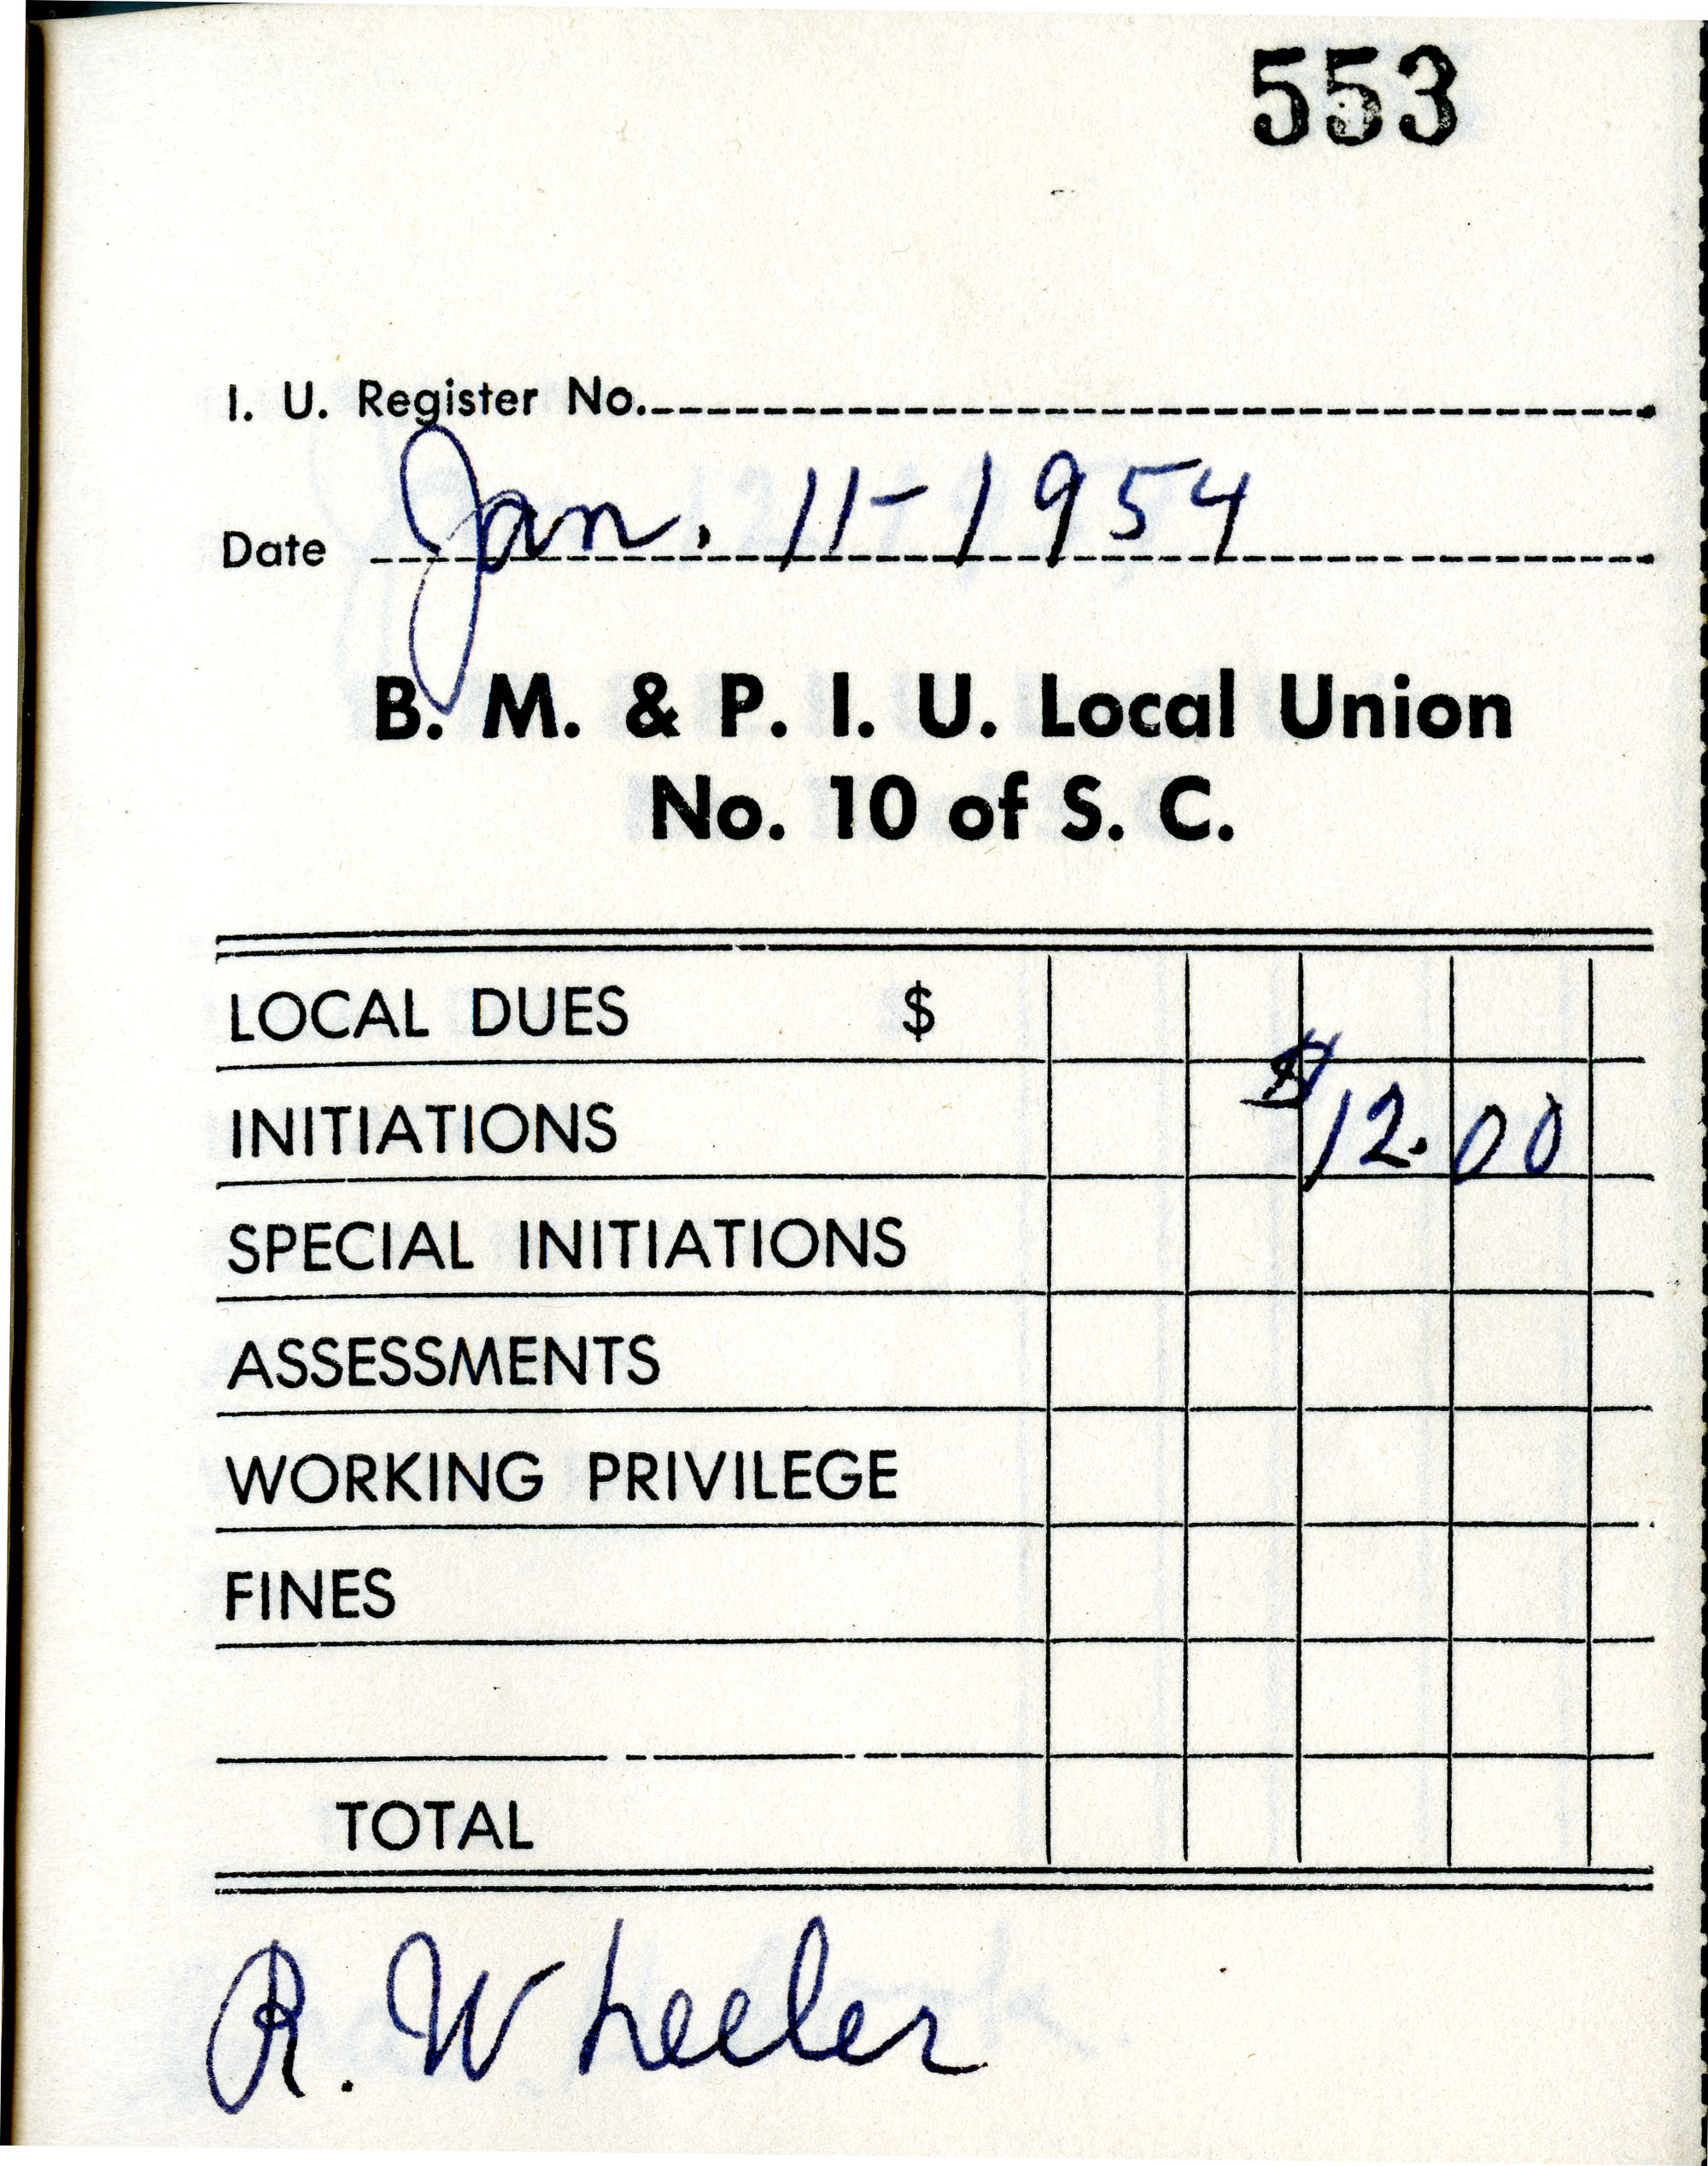 Receipt Book 6, Page 4